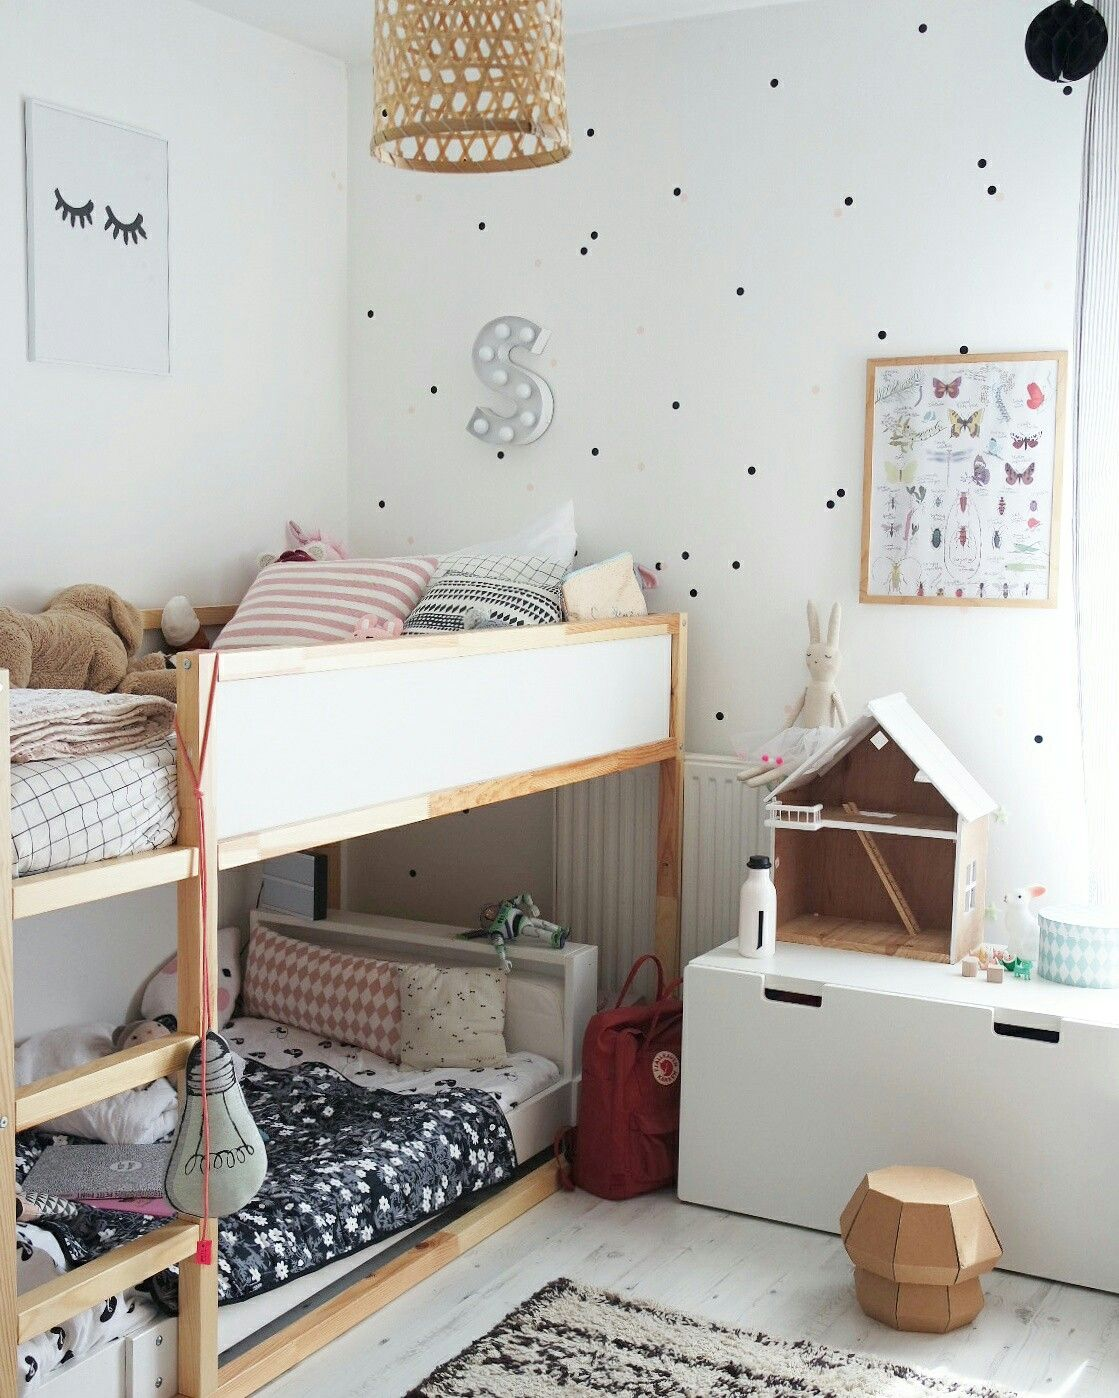 Habitaci n compartida ikea child world pinterest for Habitaciones pequenas ikea